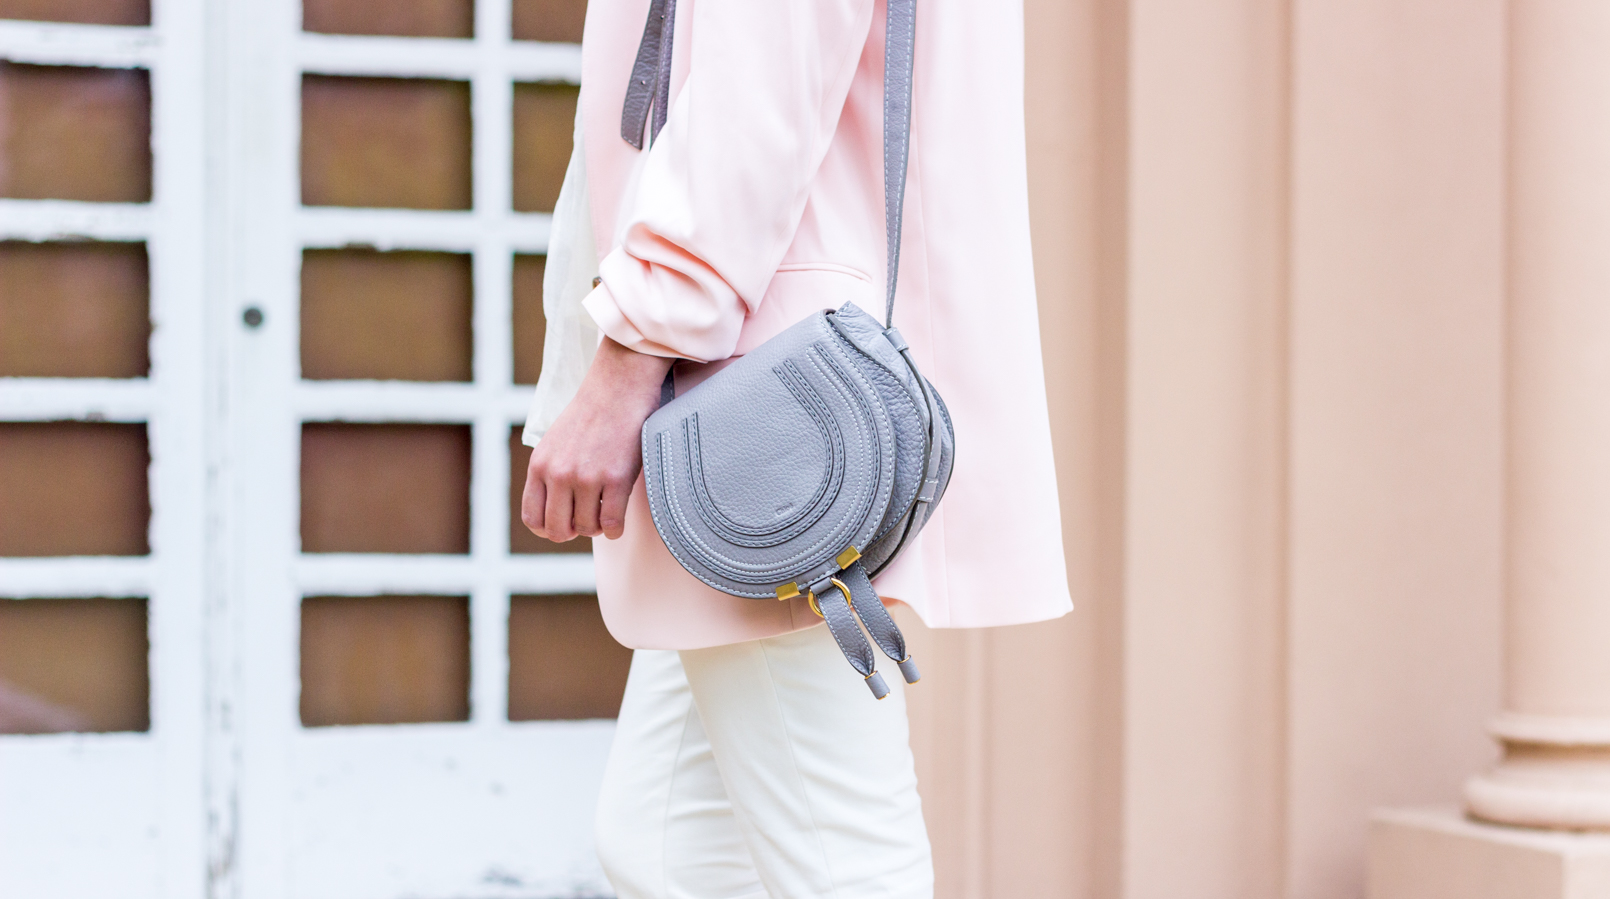 Le Fashionaire blogger catarine martins white zara trousers oversized pale pink hm blazer mini marcie gray chloe leather bag 0800F EN blogger catarine martins white zara trousers oversized pale pink hm blazer mini marcie gray chloe leather bag 0800F EN